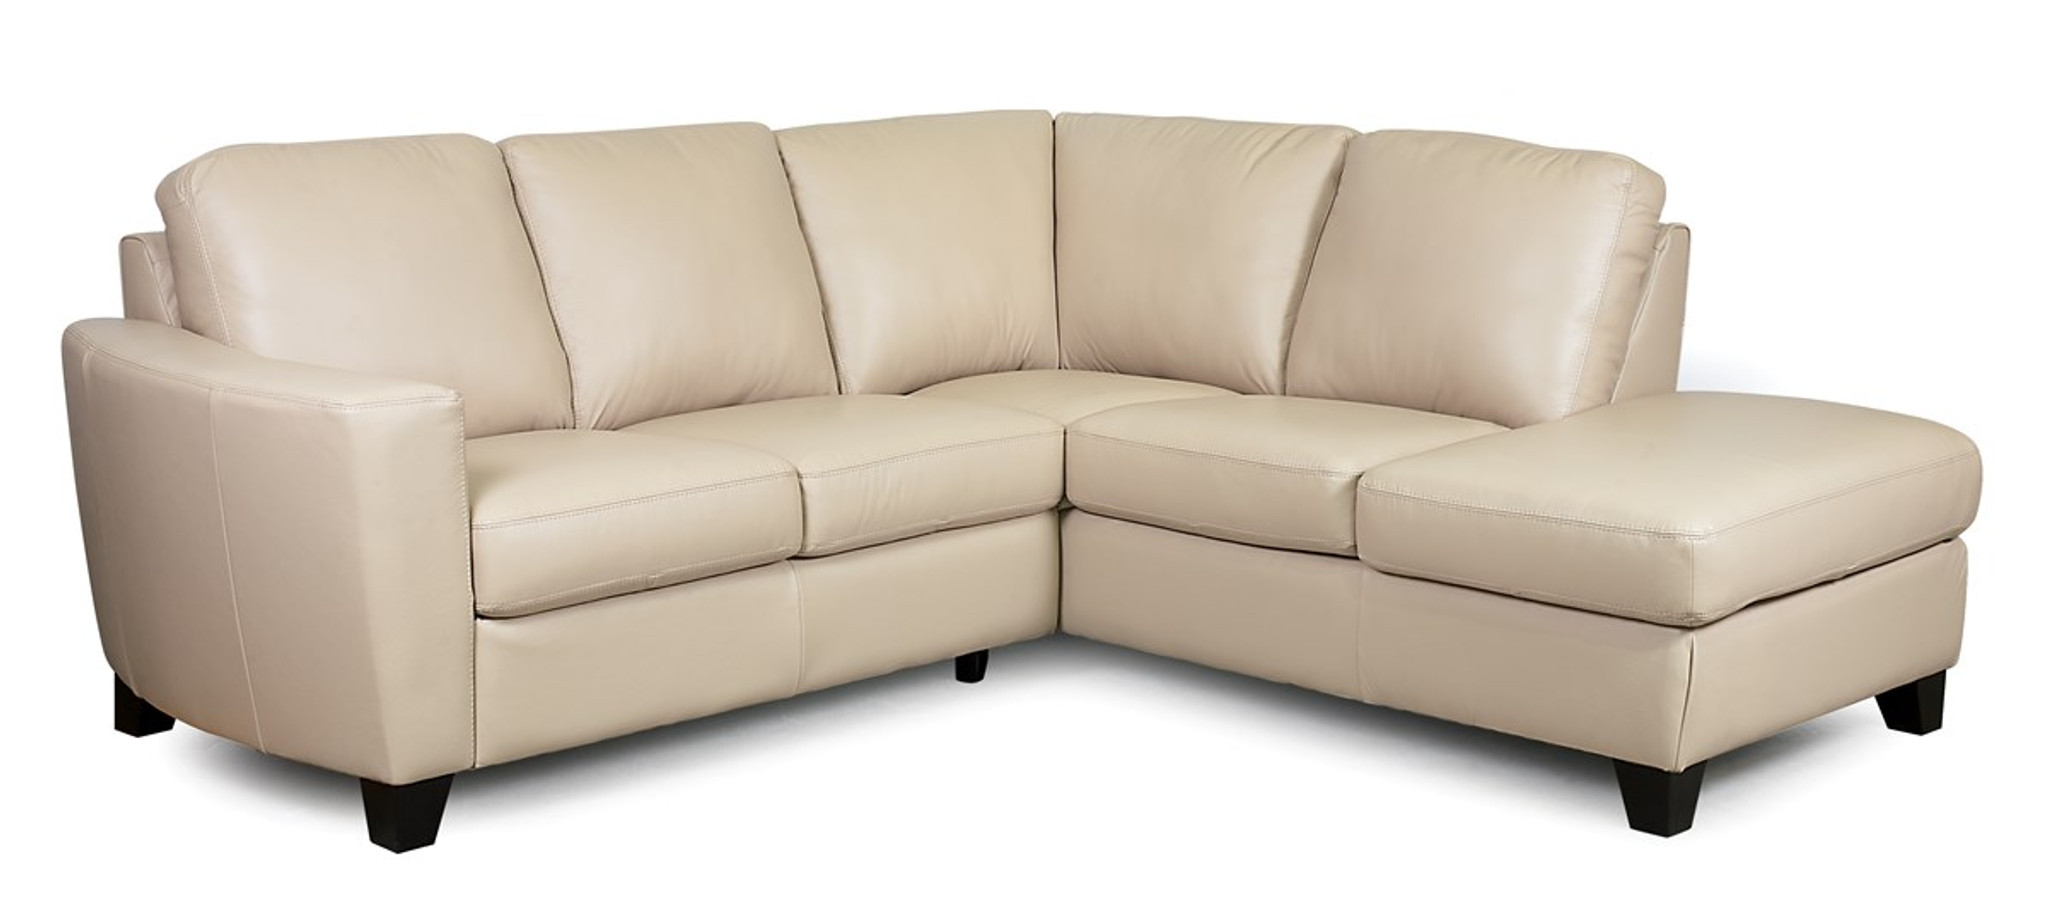 Palliser Leather Sofa Sectional Model 77328 Leeds